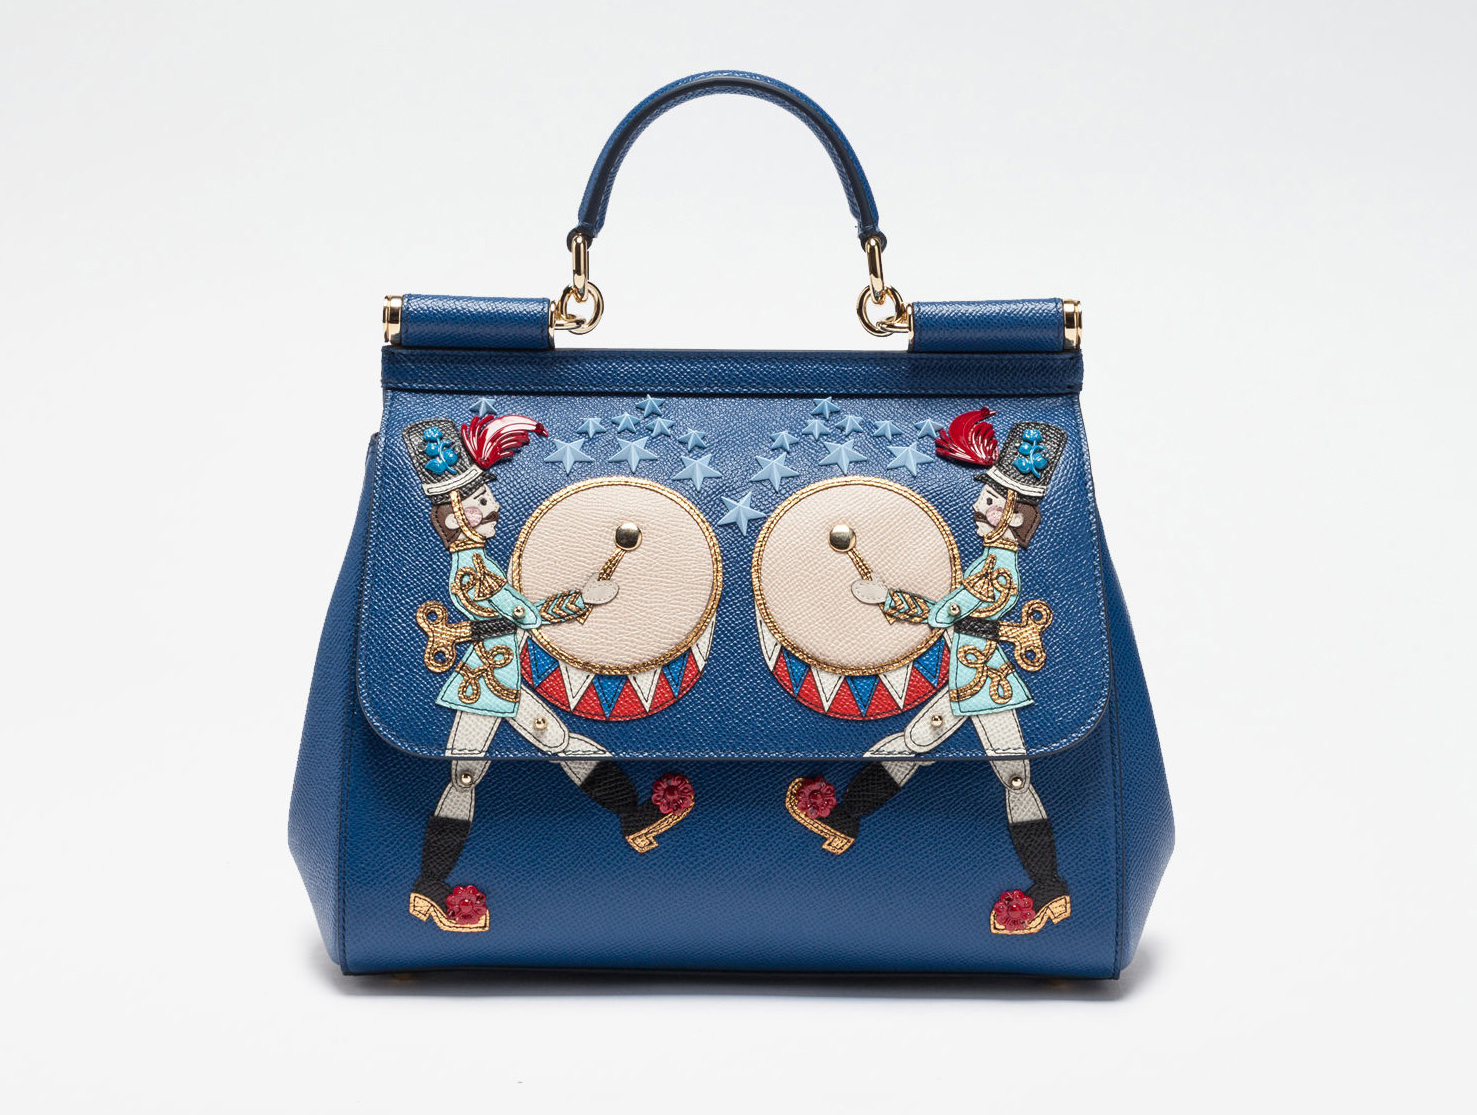 dolce-gabbana-fall-2016-accessories-bags-shoes-tom-lorenzo-site-0